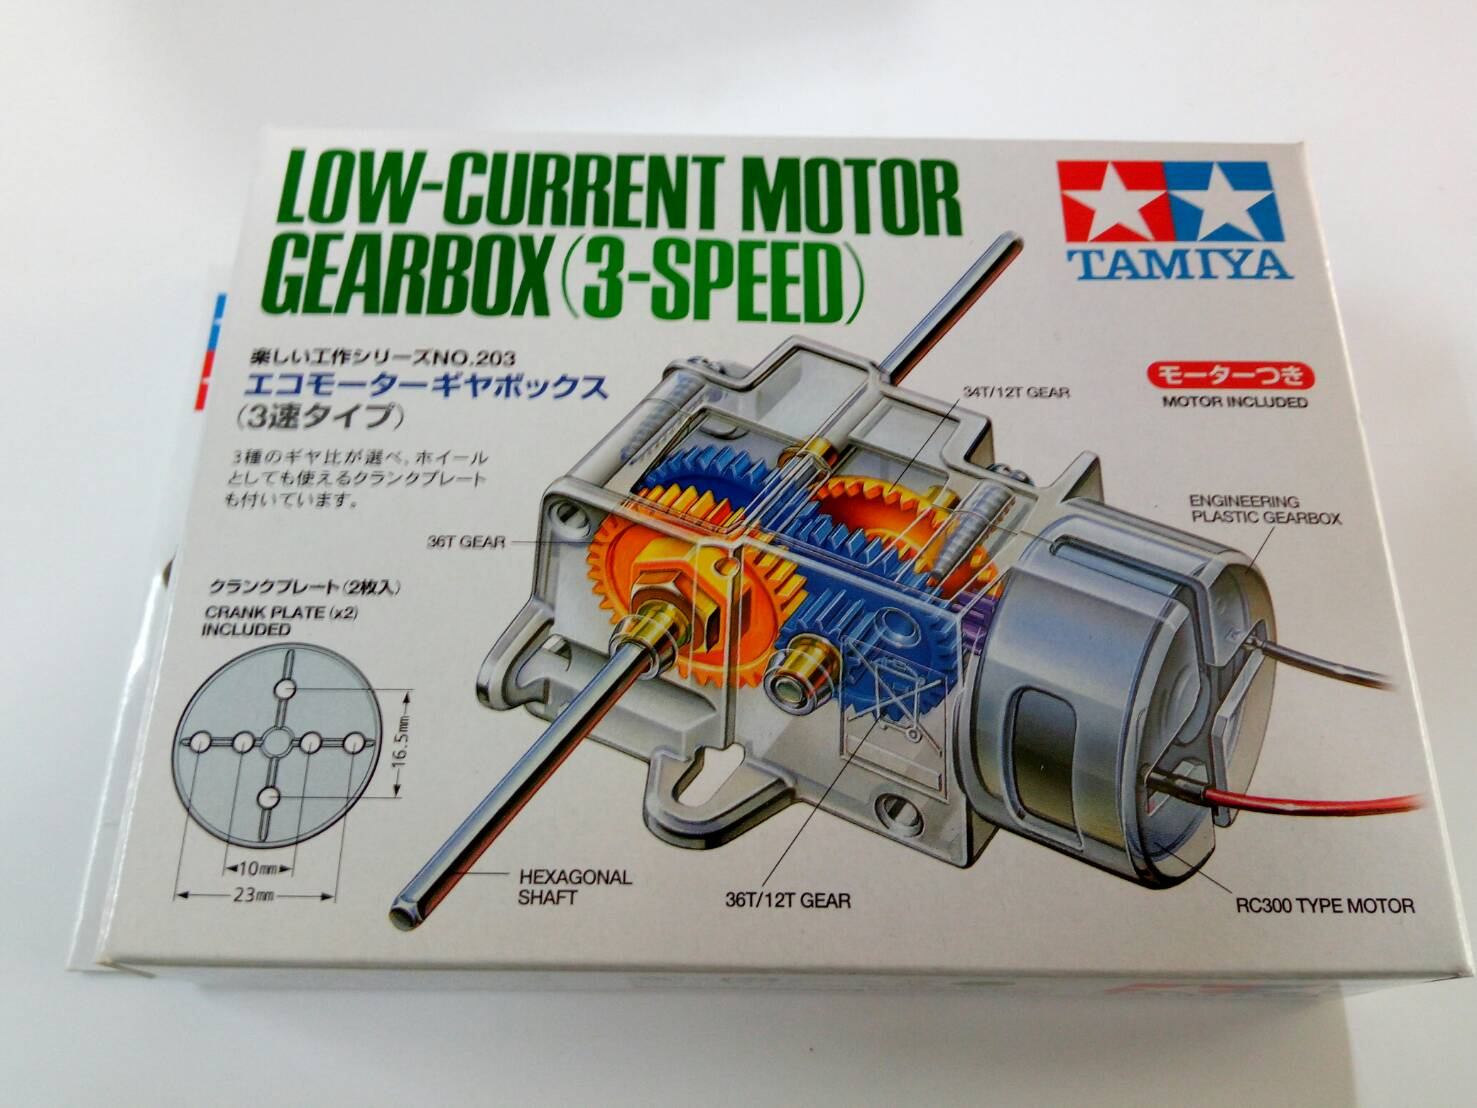 LOW-CURRENT MOTOR GEARBOX 3-SPEED